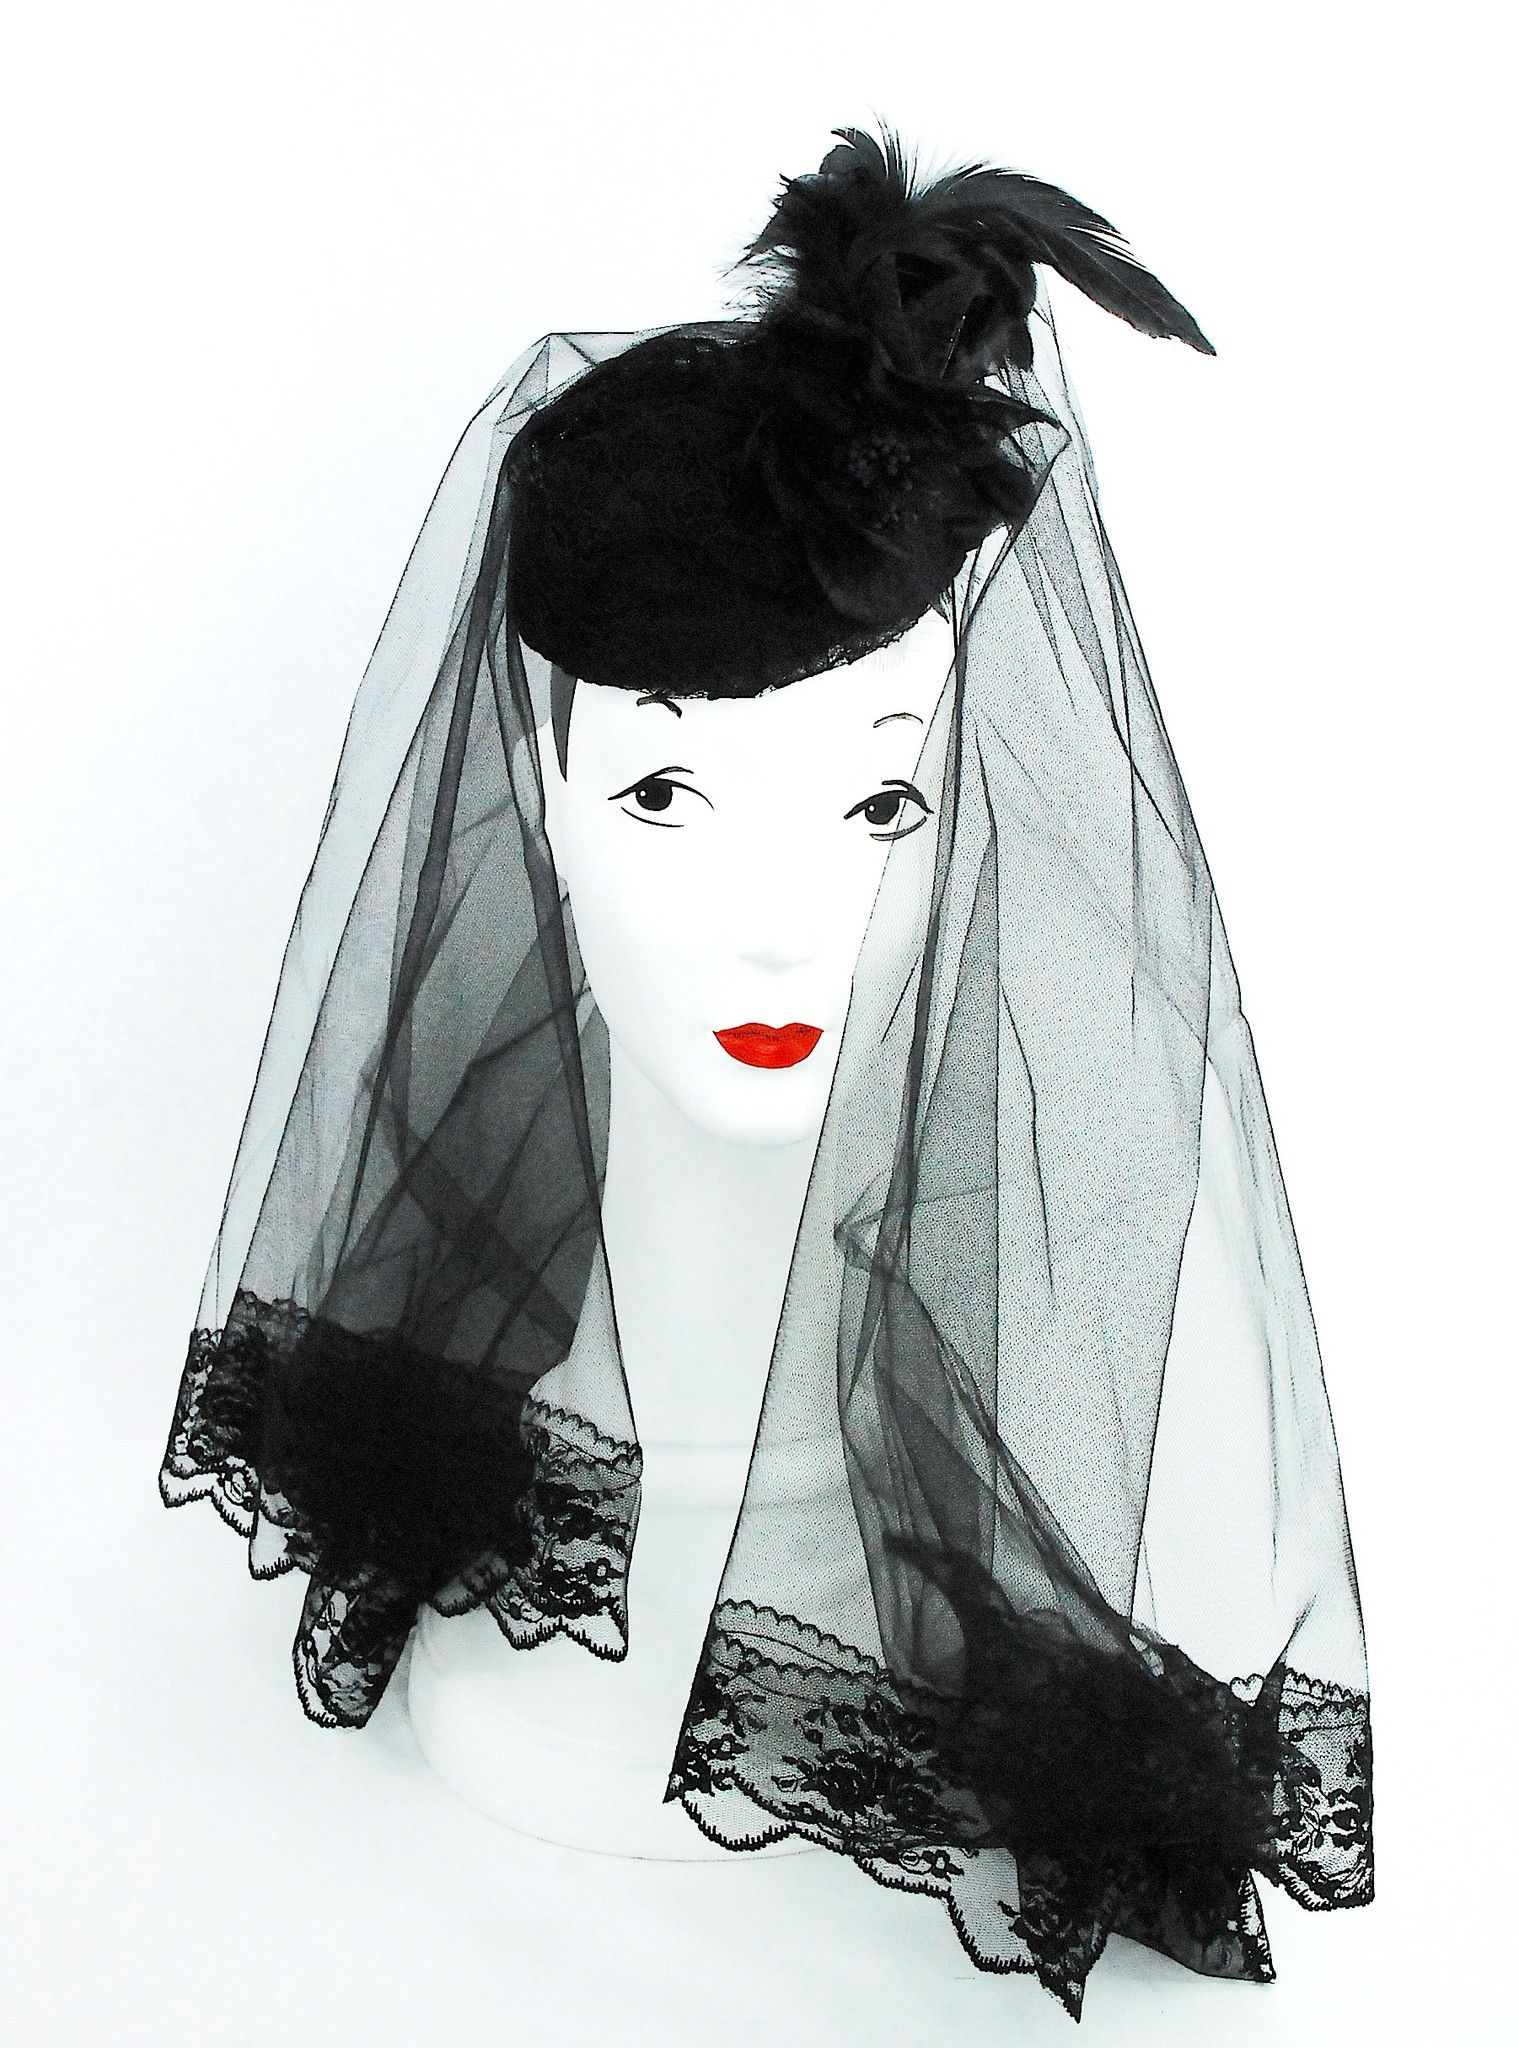 Lace dress styles for funeral  Black funeral hat with lace veil black silk flower and black